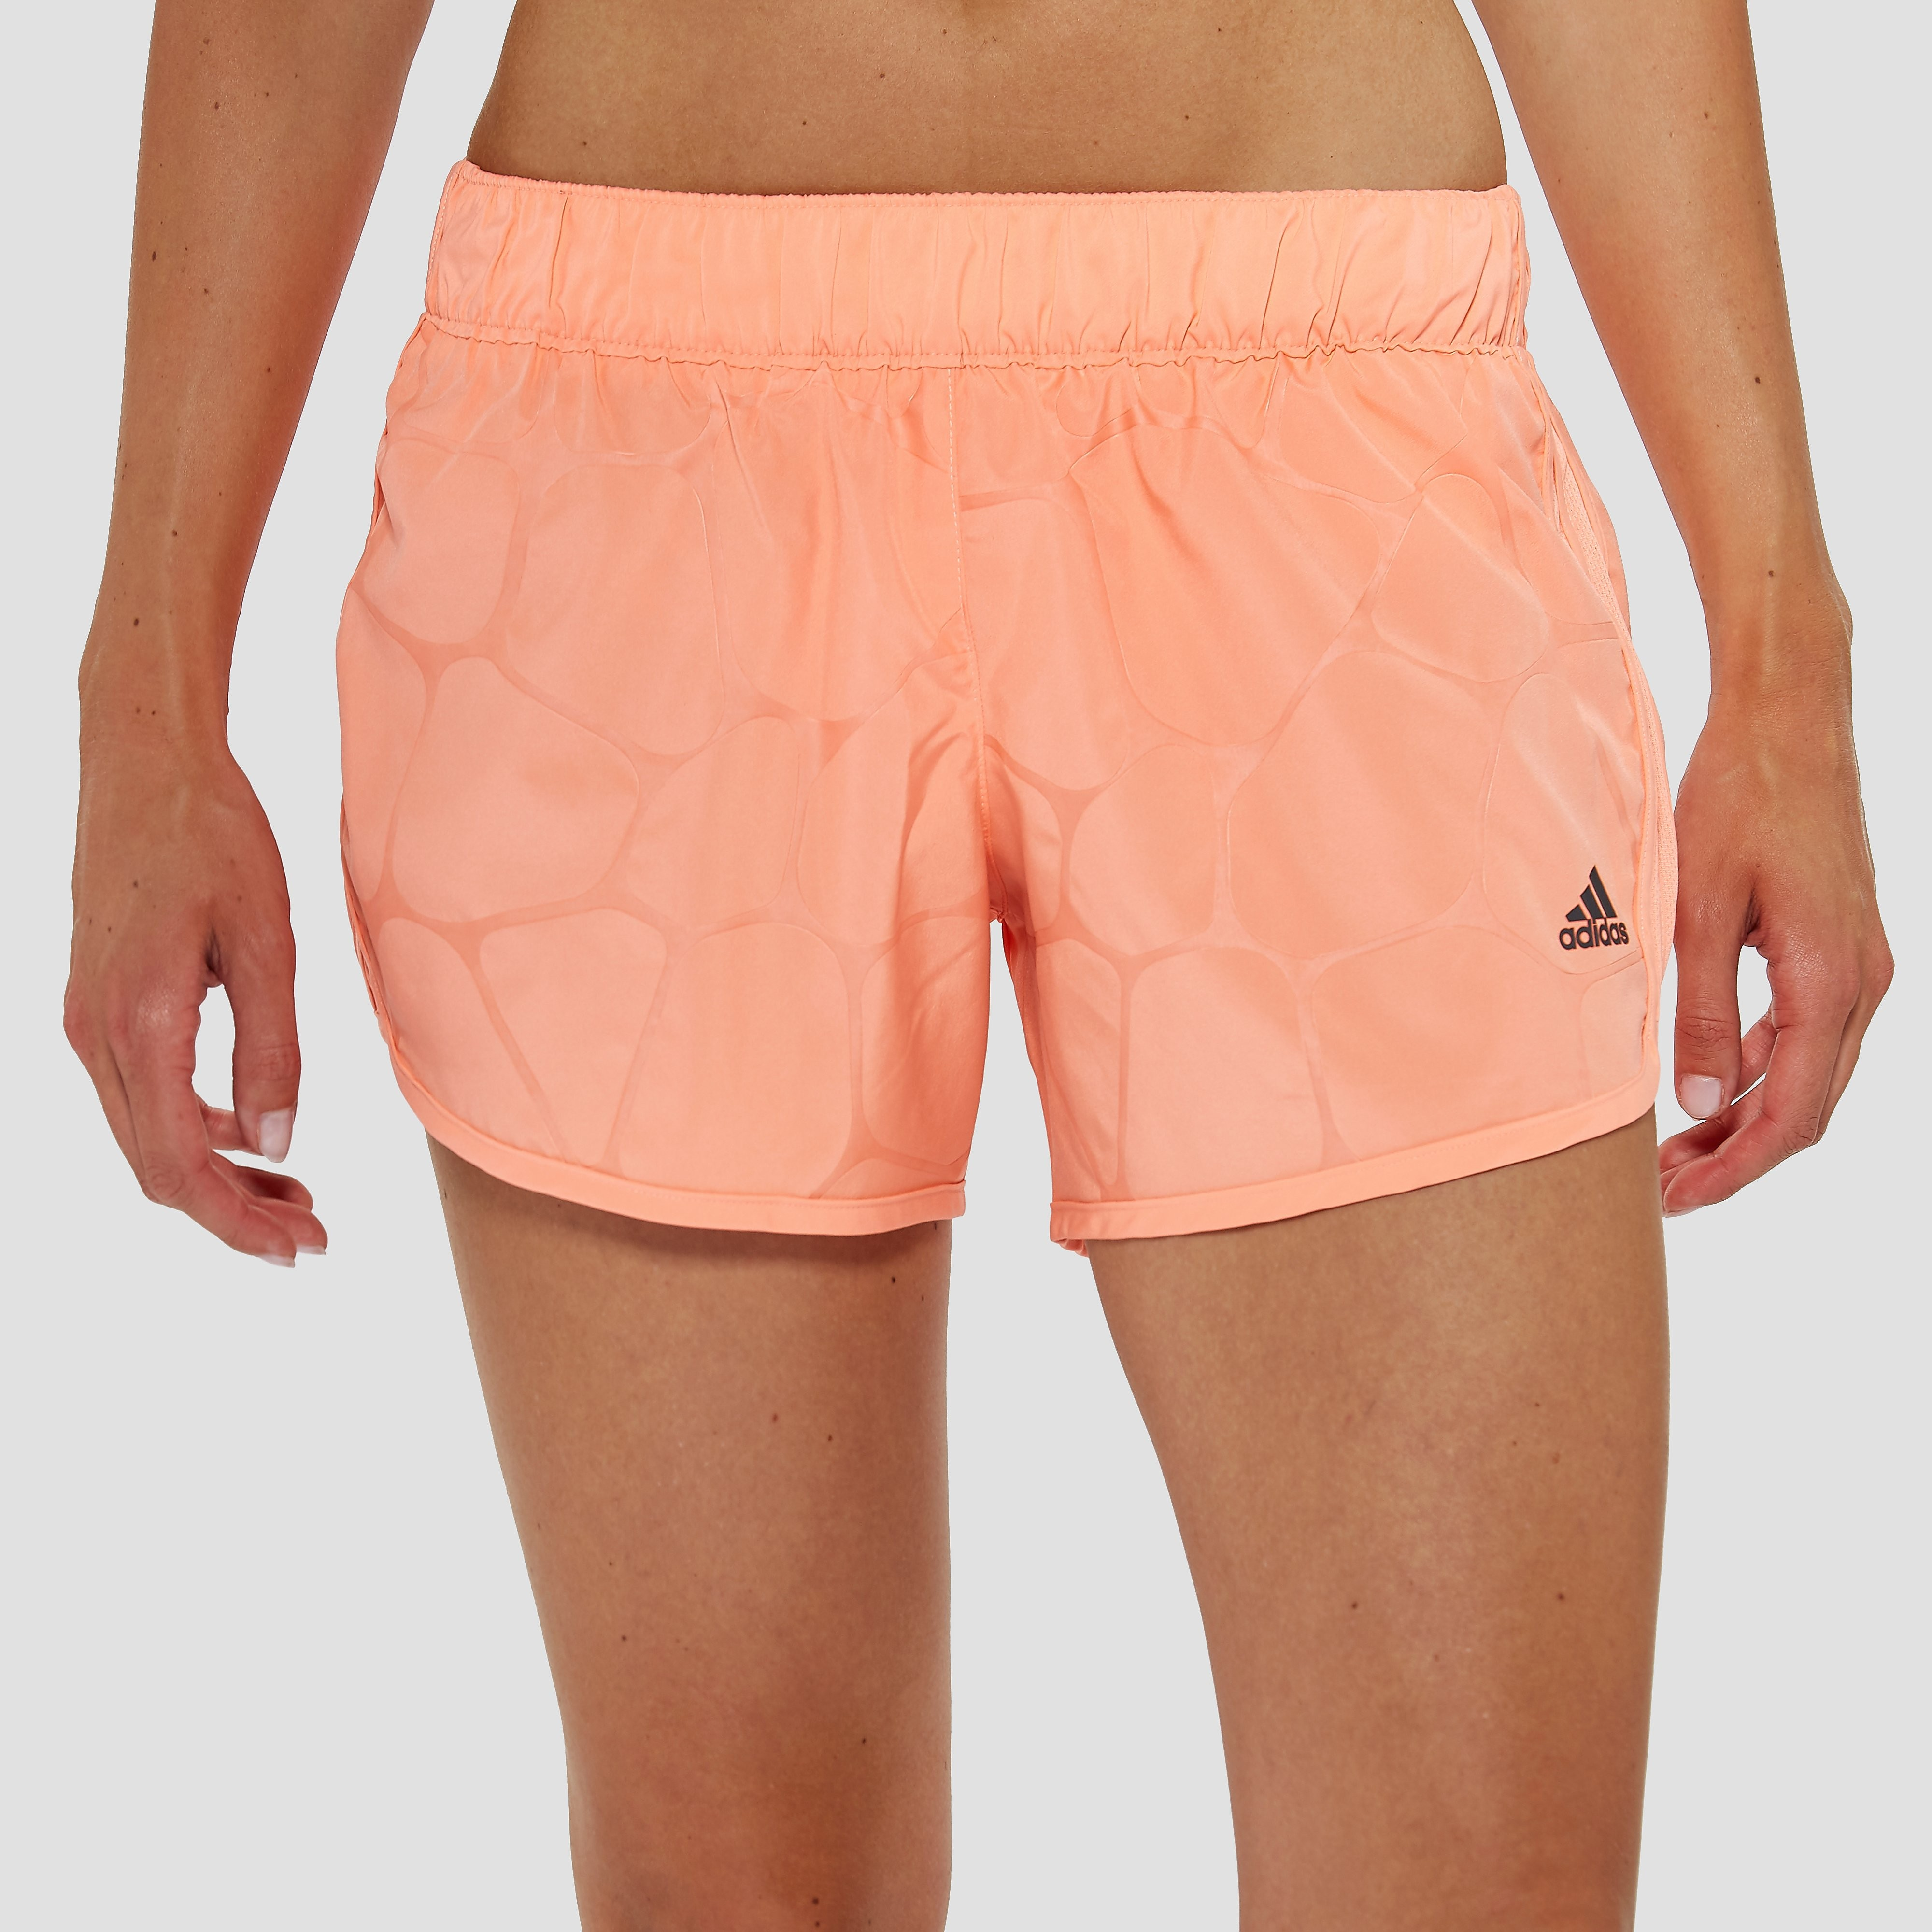 ADIDAS M10 BOOST 5-INCH HARDLOOPSHORT ROOD DAMES